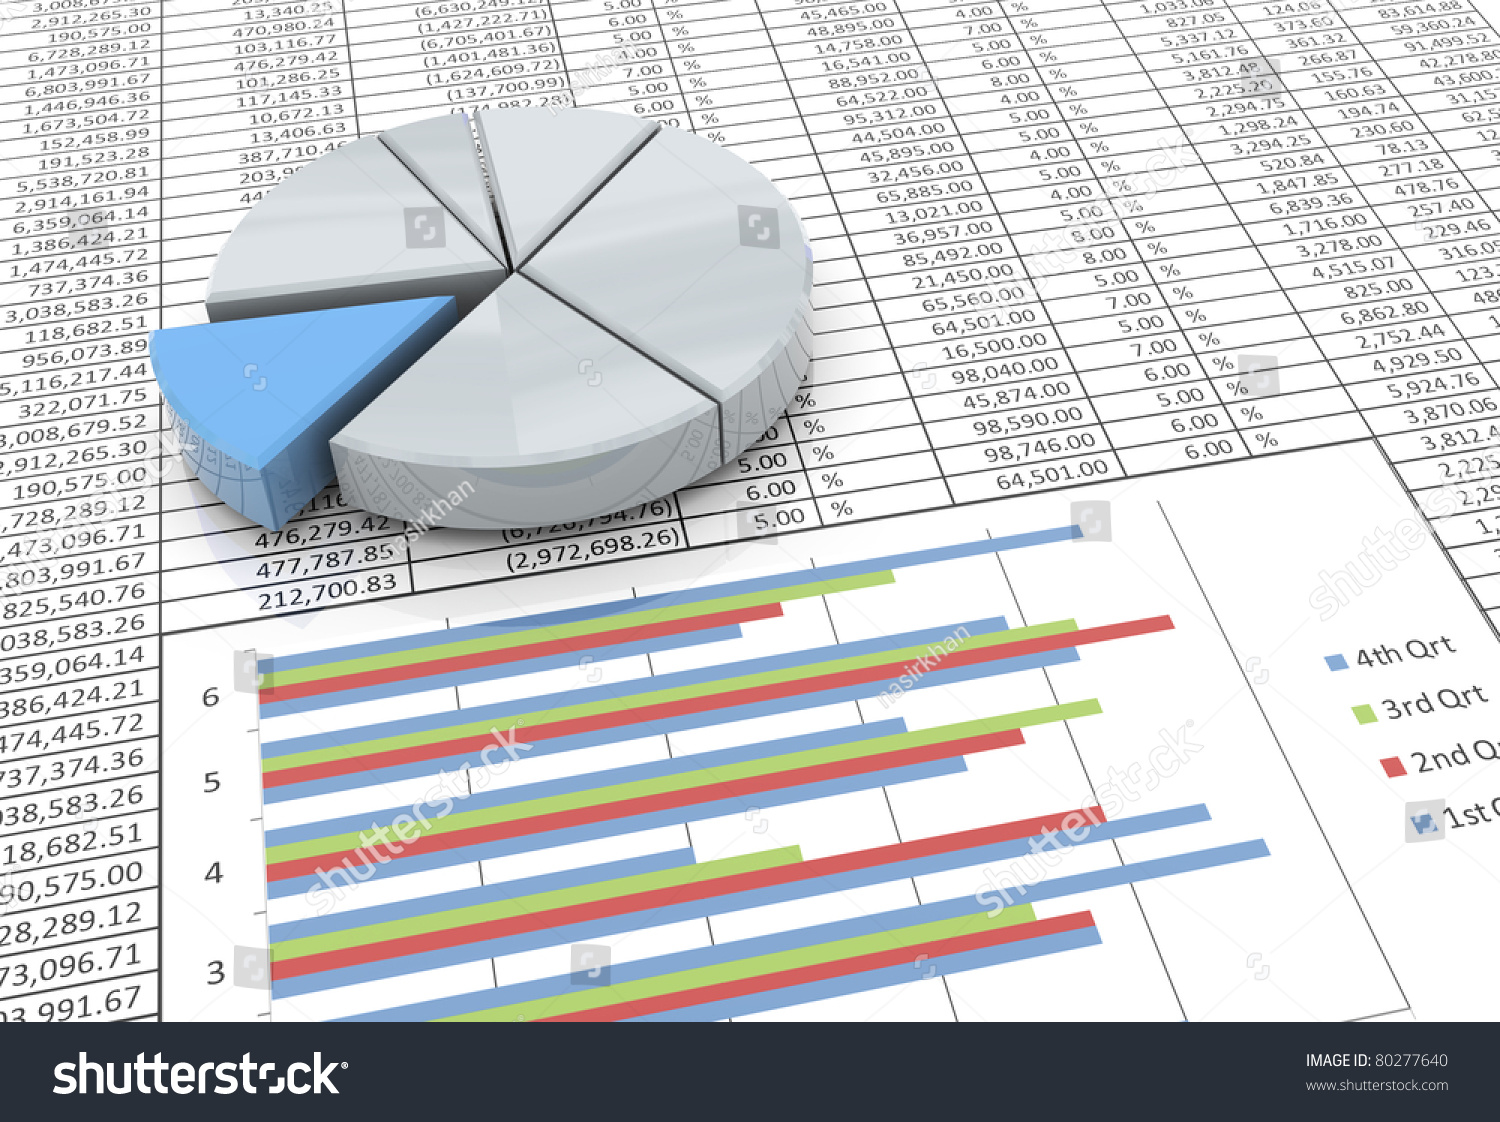 3d reflective pie chart on background stock illustration 80277640 3d reflective pie chart on the background of spreadsheet nvjuhfo Image collections